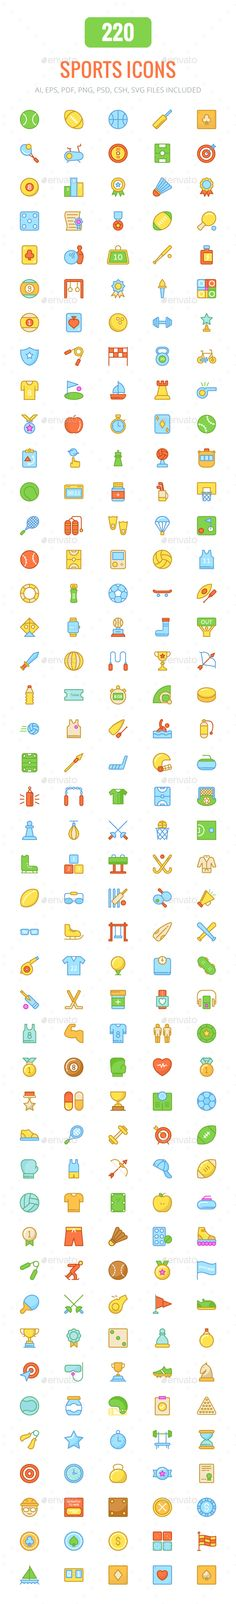 200+ Sports Colored and Line Icons